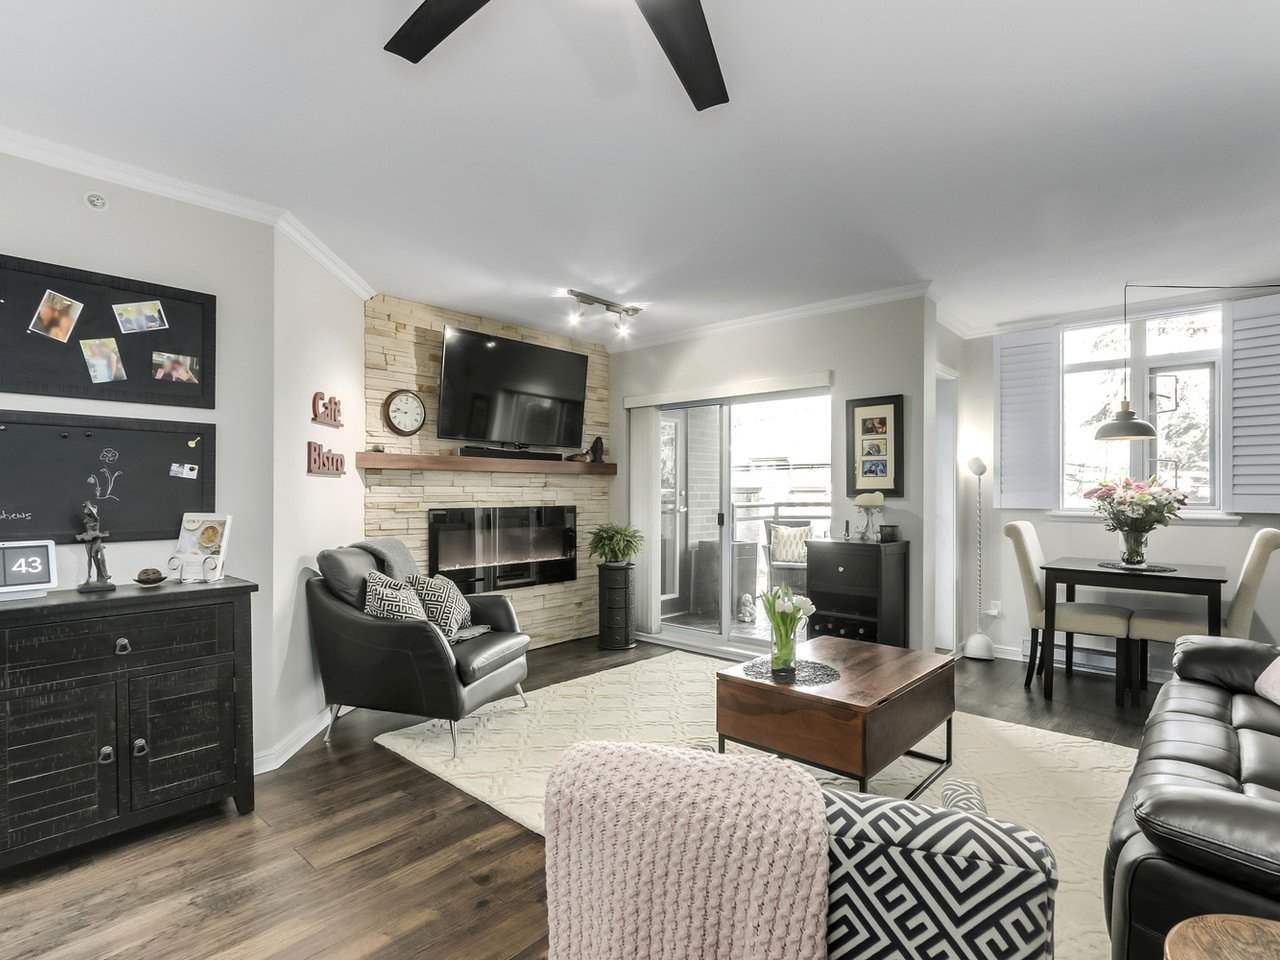 """Main Photo: 201 2665 W BROADWAY in Vancouver: Kitsilano Condo for sale in """"MAGUIRE BUILDING"""" (Vancouver West)  : MLS®# R2548930"""